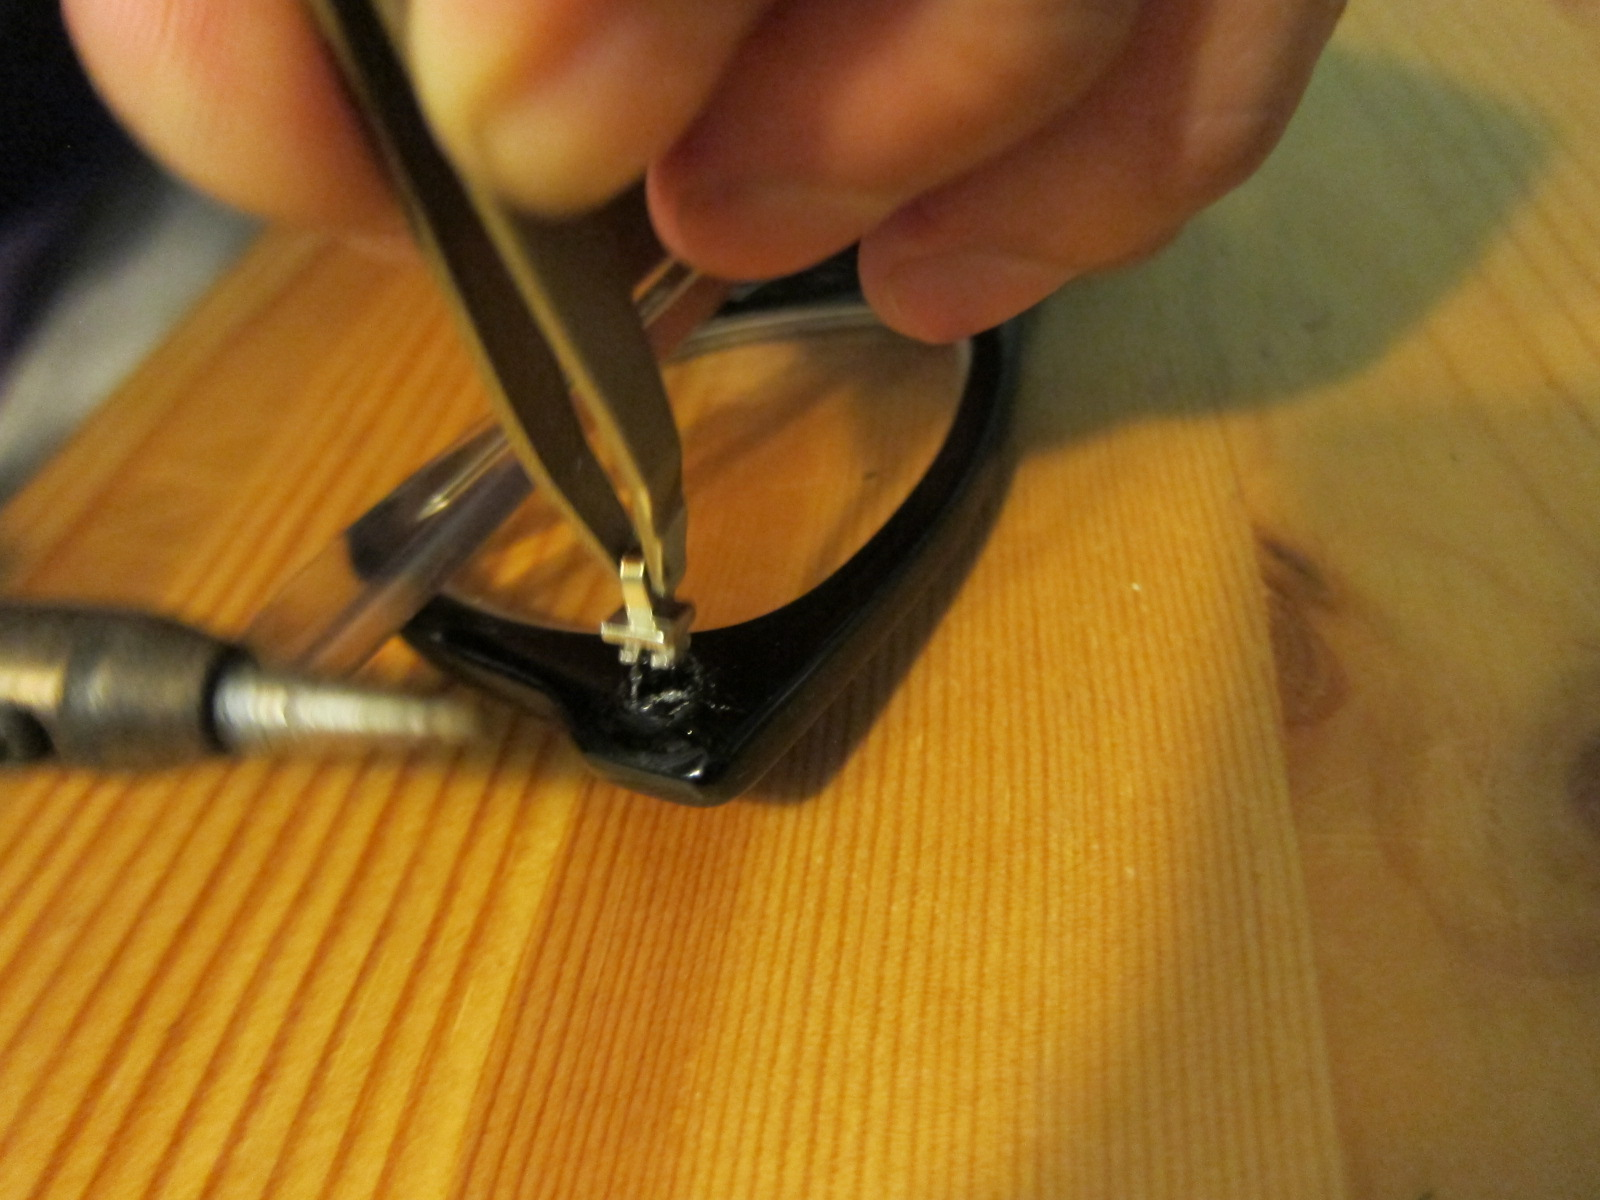 Replacing Hinge In Plastic Framed Glasses The Reality